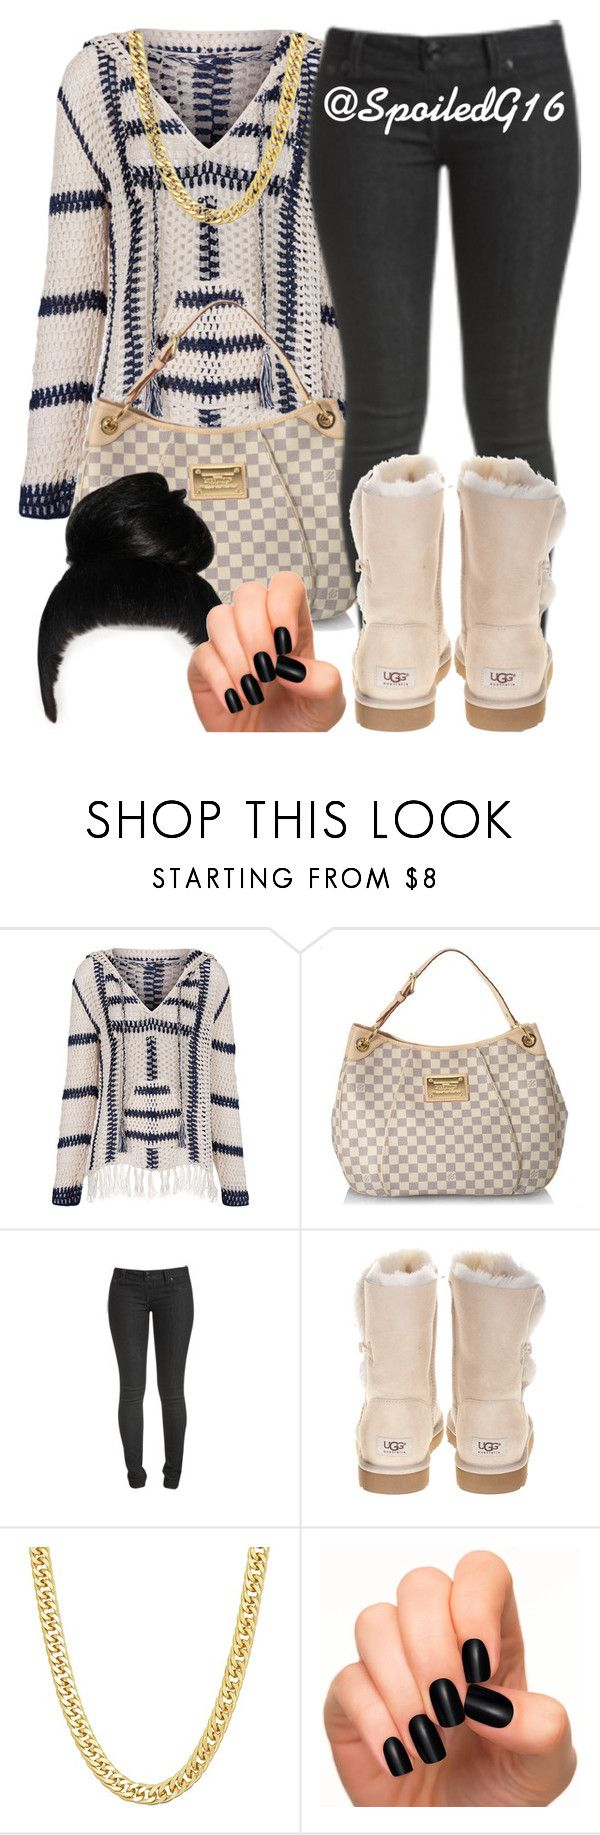 """""""Touch Of Beige."""" by spoiledg16 ❤ liked on Polyvore featuring Anna Kosturova, Louis Vuitton, Wet Seal, UGG Australia and Incoco"""